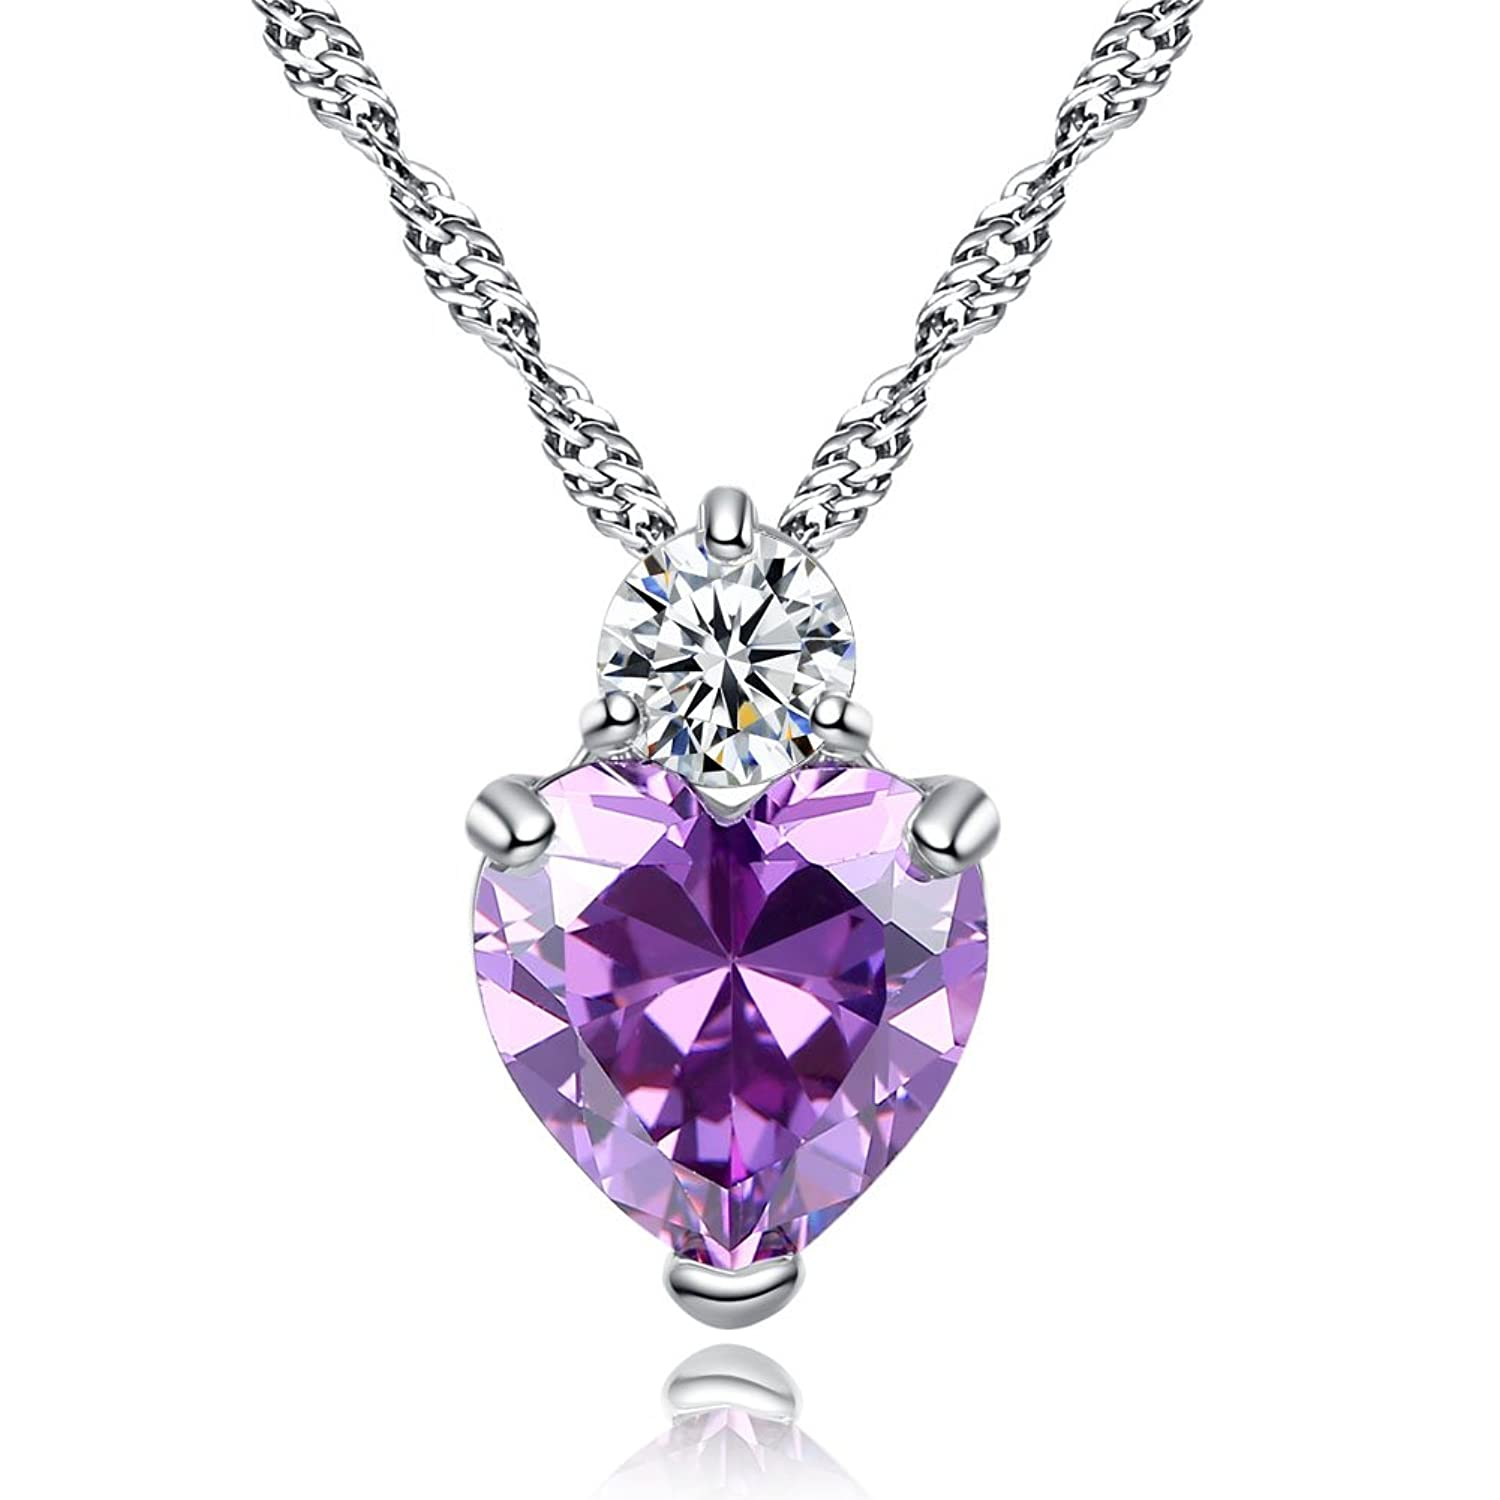 Amazon godyce heart amethyst pendant necklace women girl amazon godyce heart amethyst pendant necklace women girl purple crystal 18k gold plated jewelry jewelry mozeypictures Images